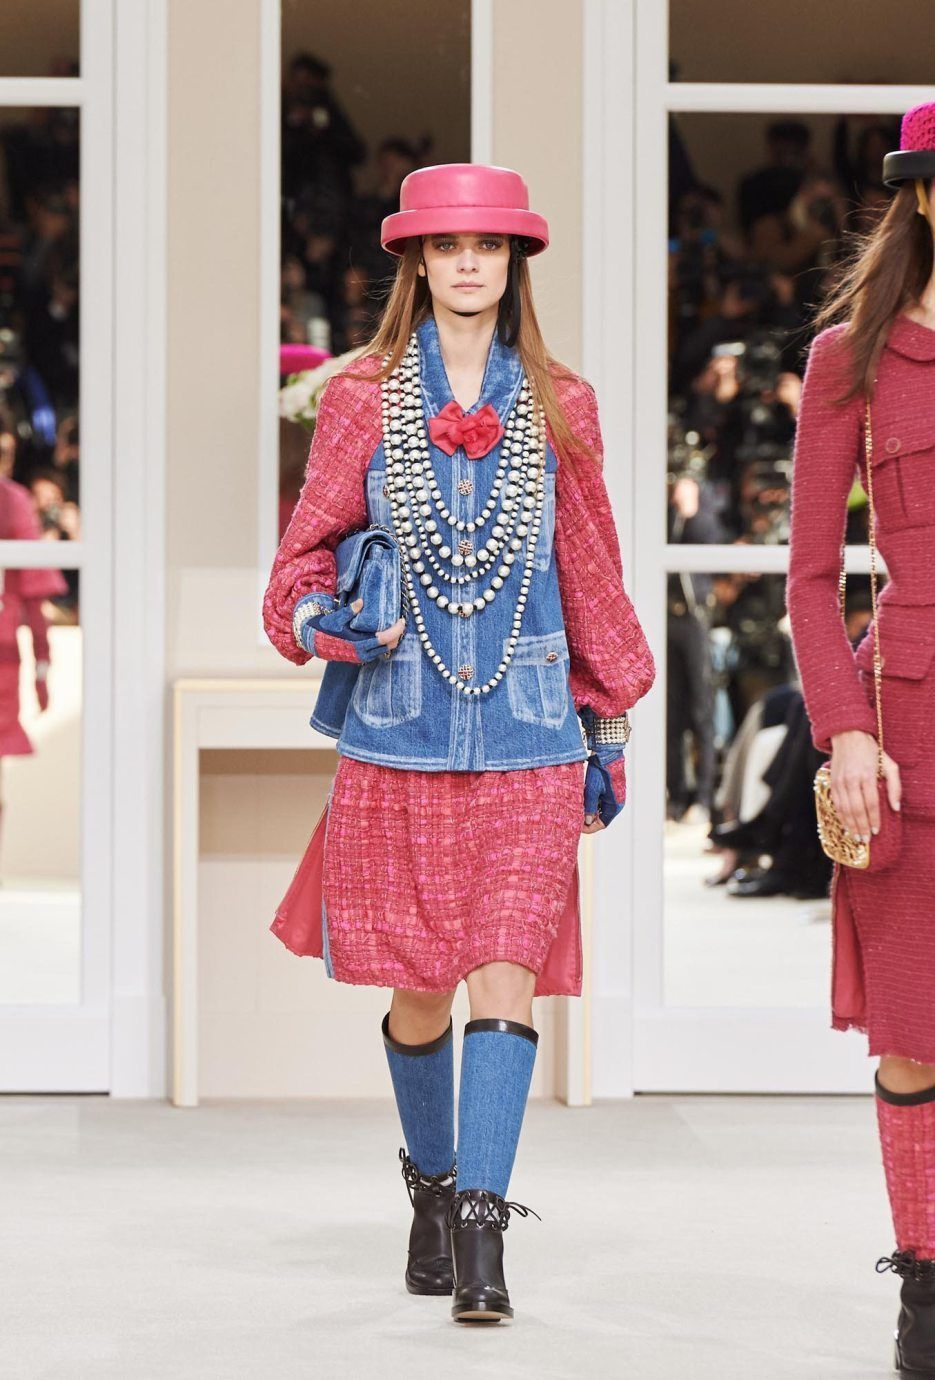 naina-co-march-2016-luxury-lifestyle-photographer-blogger-chanel-fall-winter-ready-to-wear-03